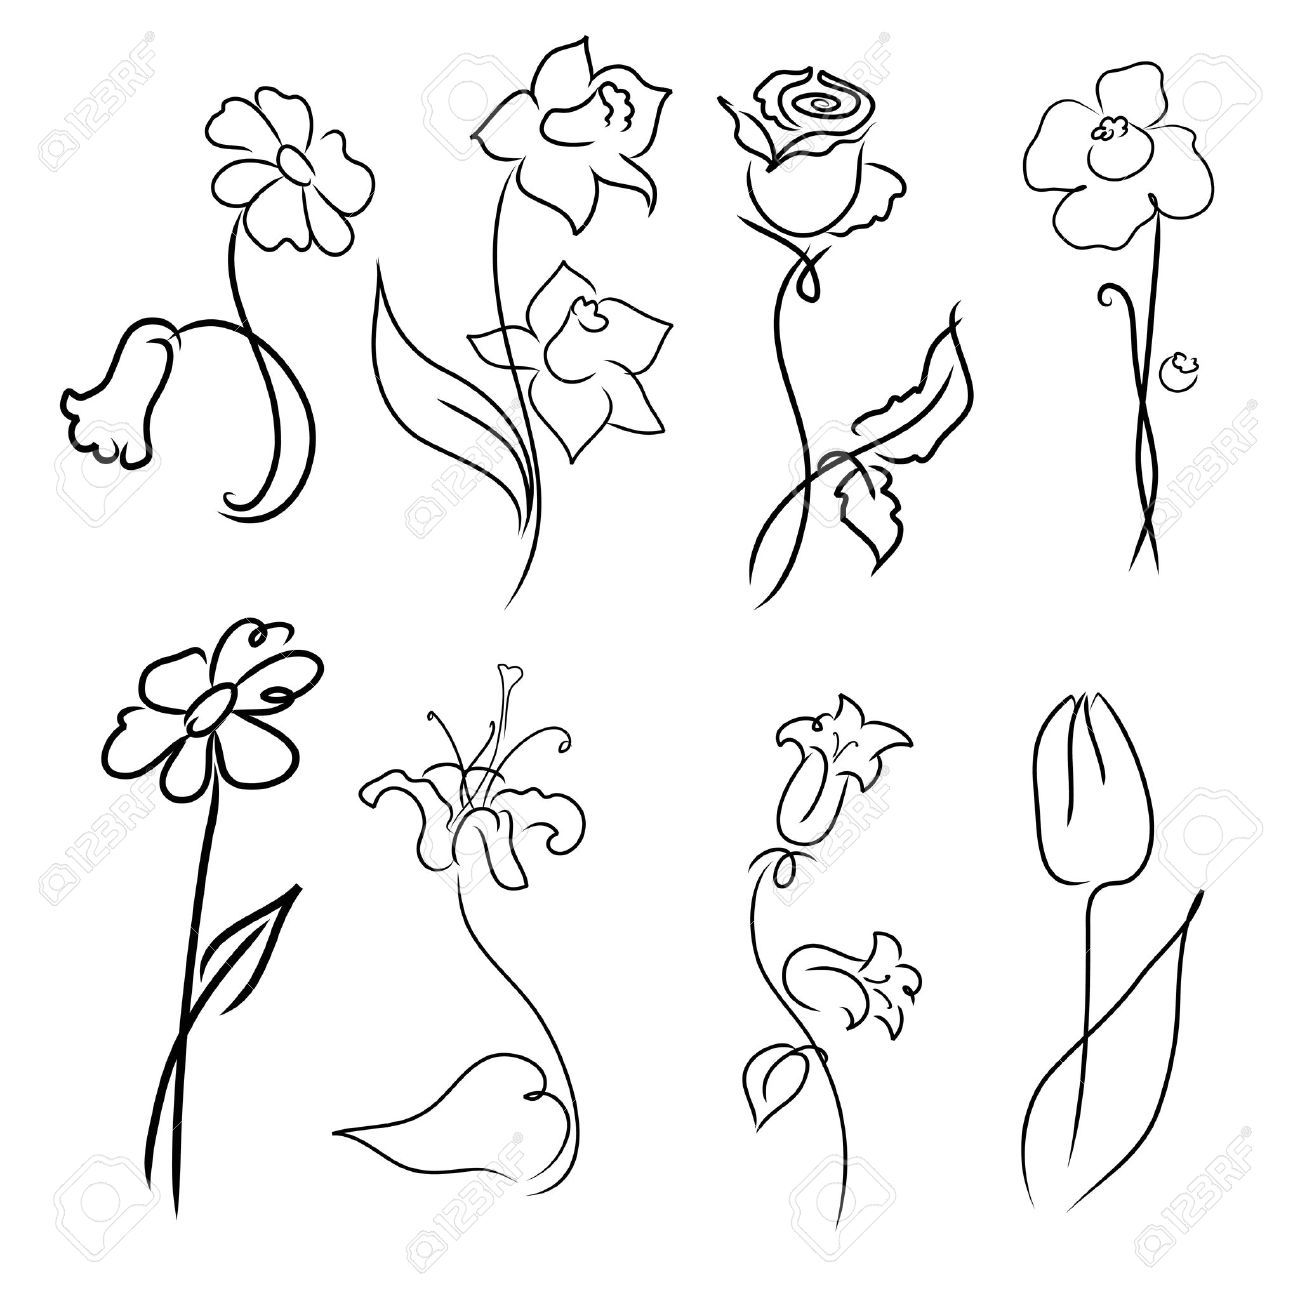 Easy Flower Drawings In Pencil: Simple Flower Designs For Pencil Drawing